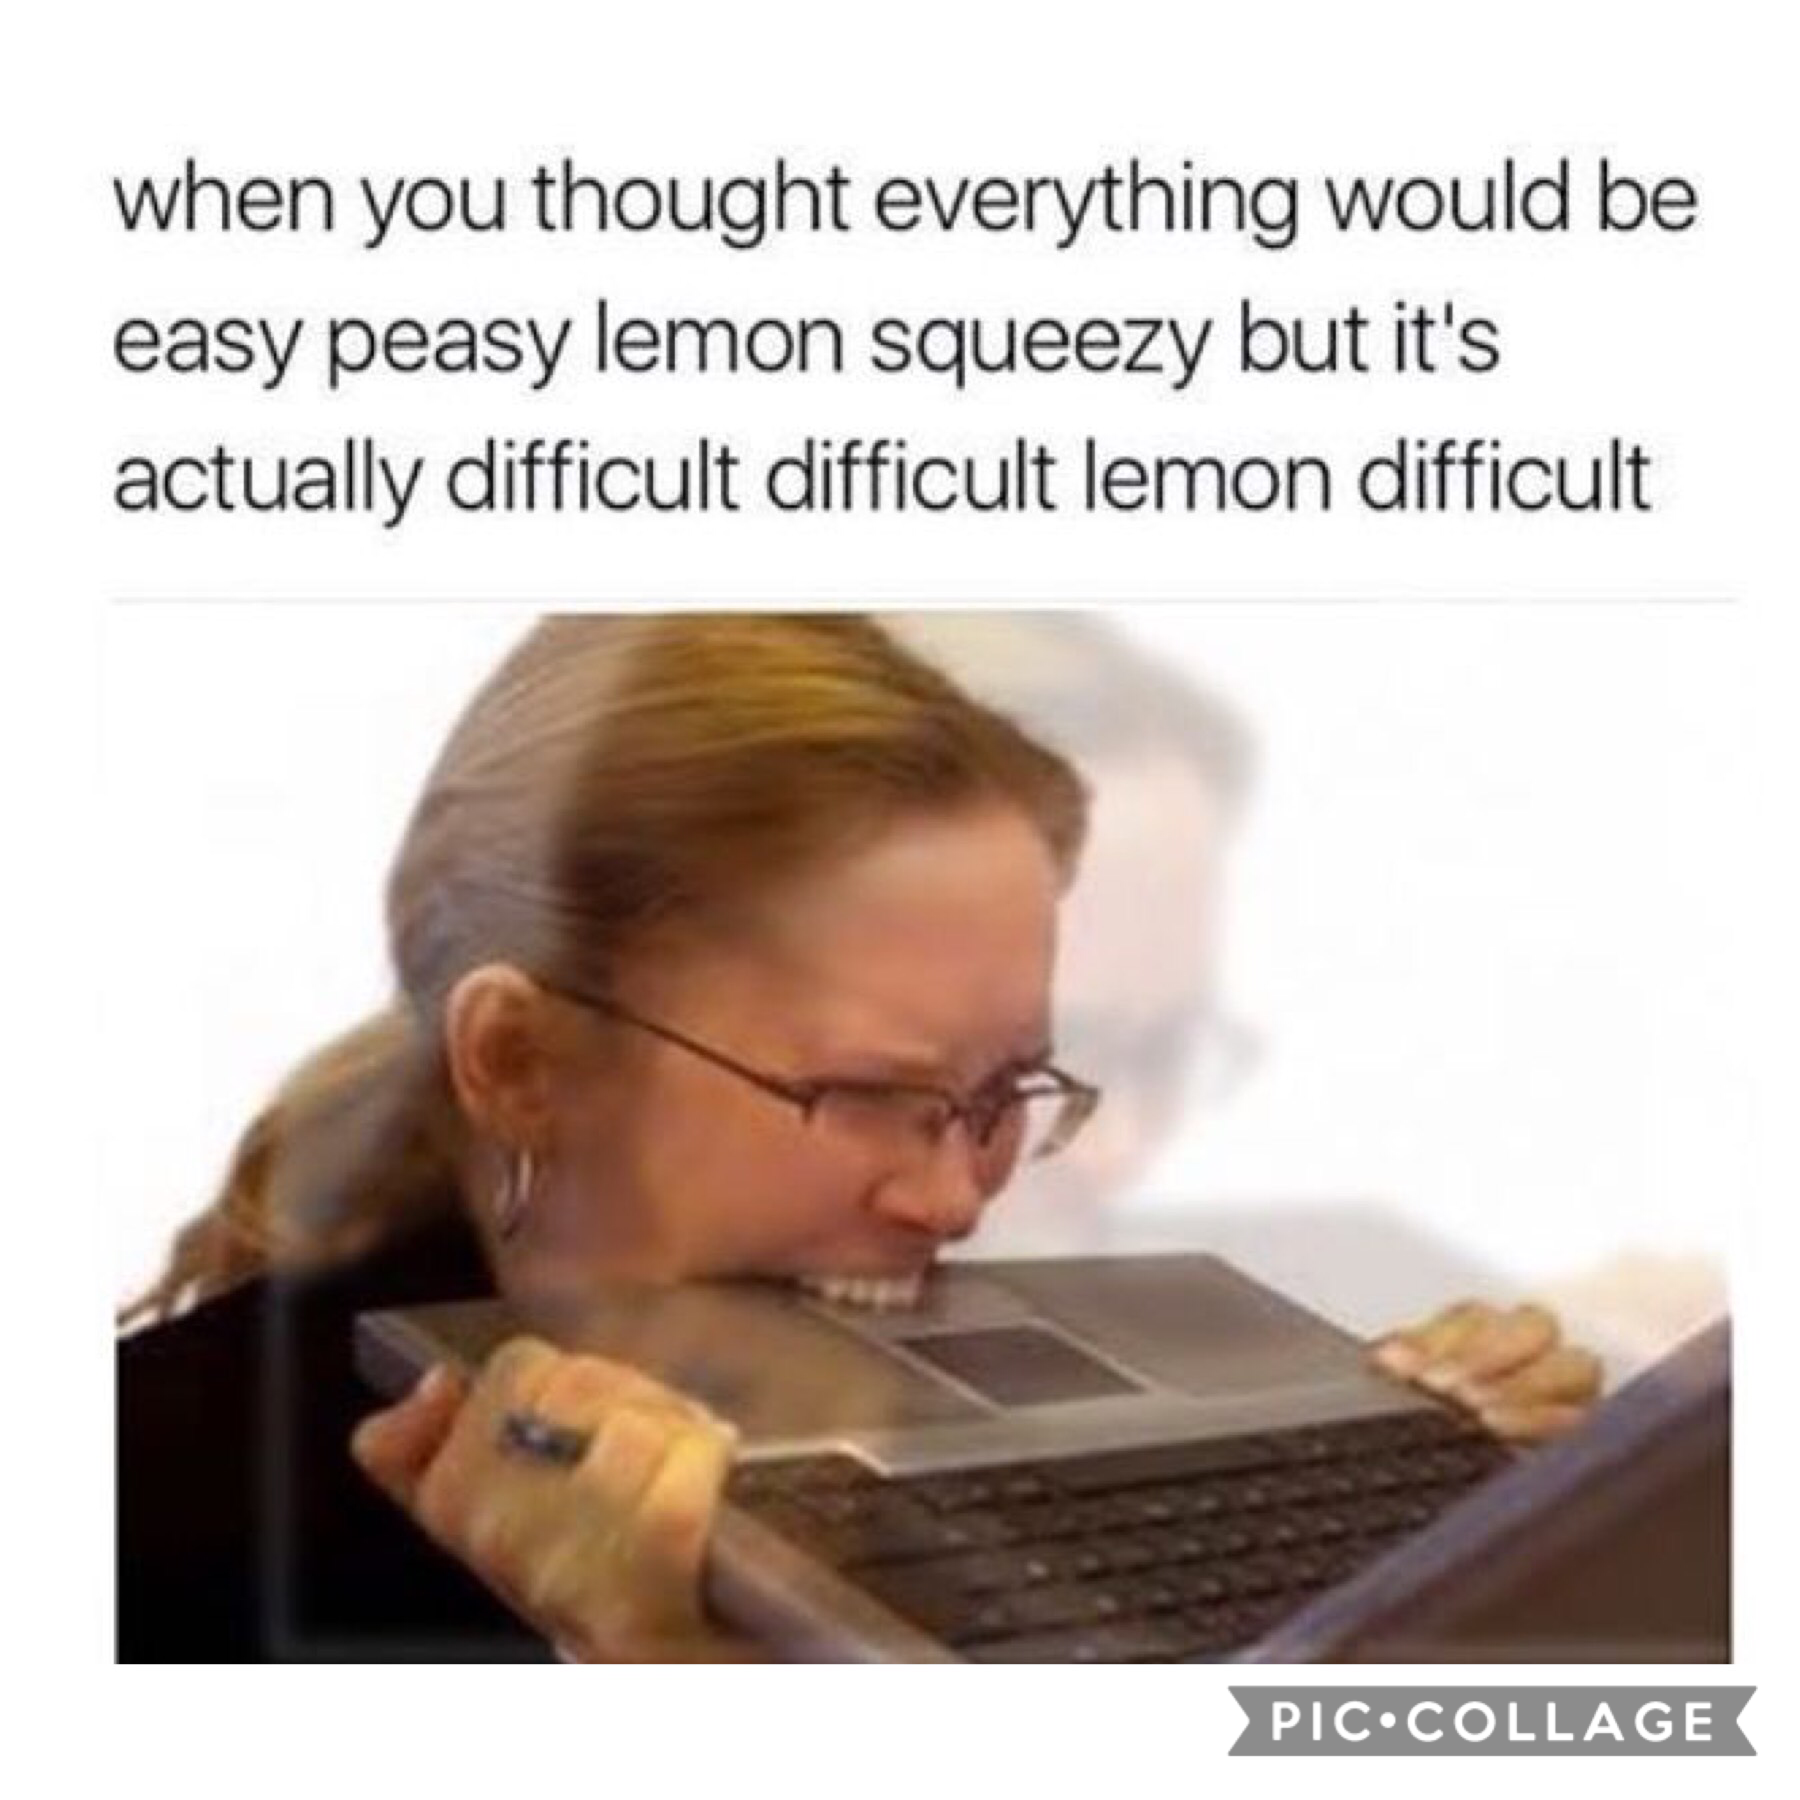 No lemon squeezey!?  This is a disaster